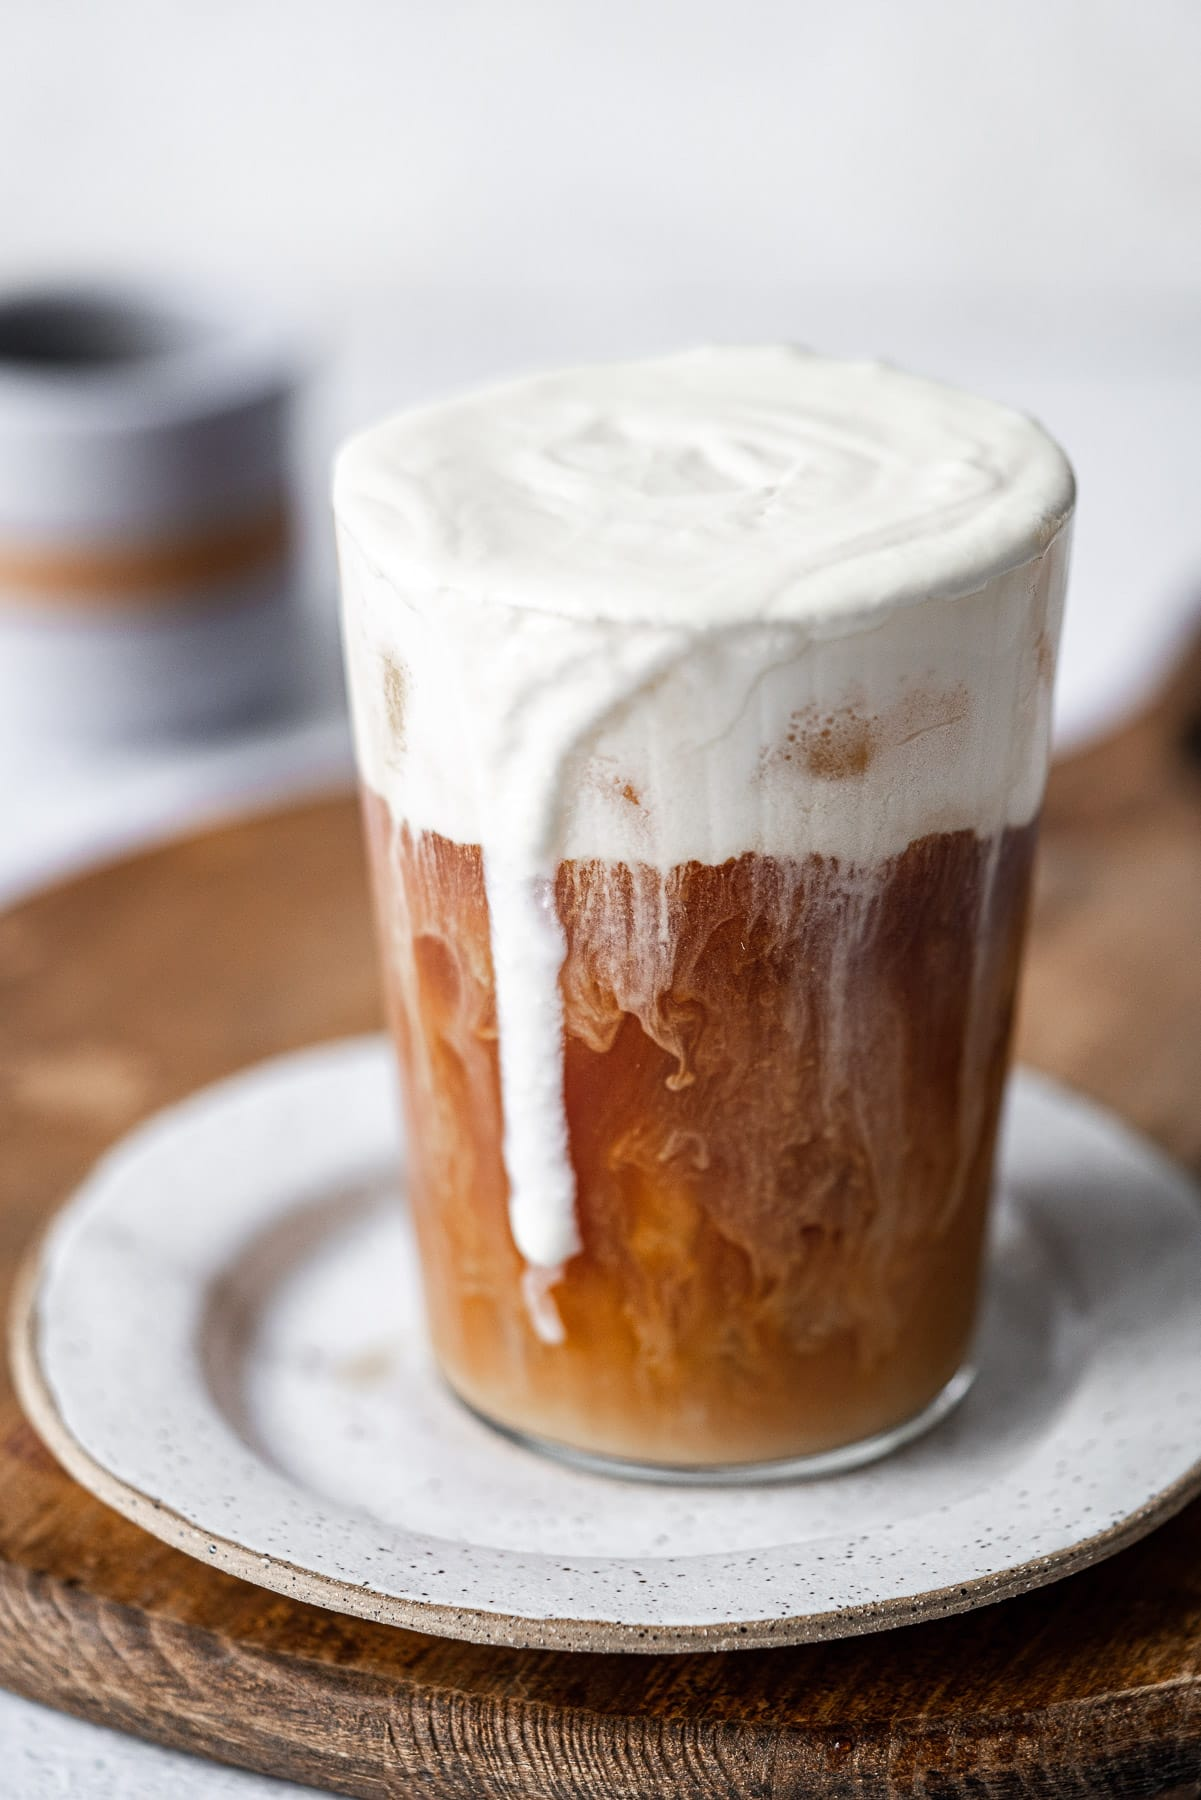 vanilla sweet cream cold foam dripping down the side of an iced coffee